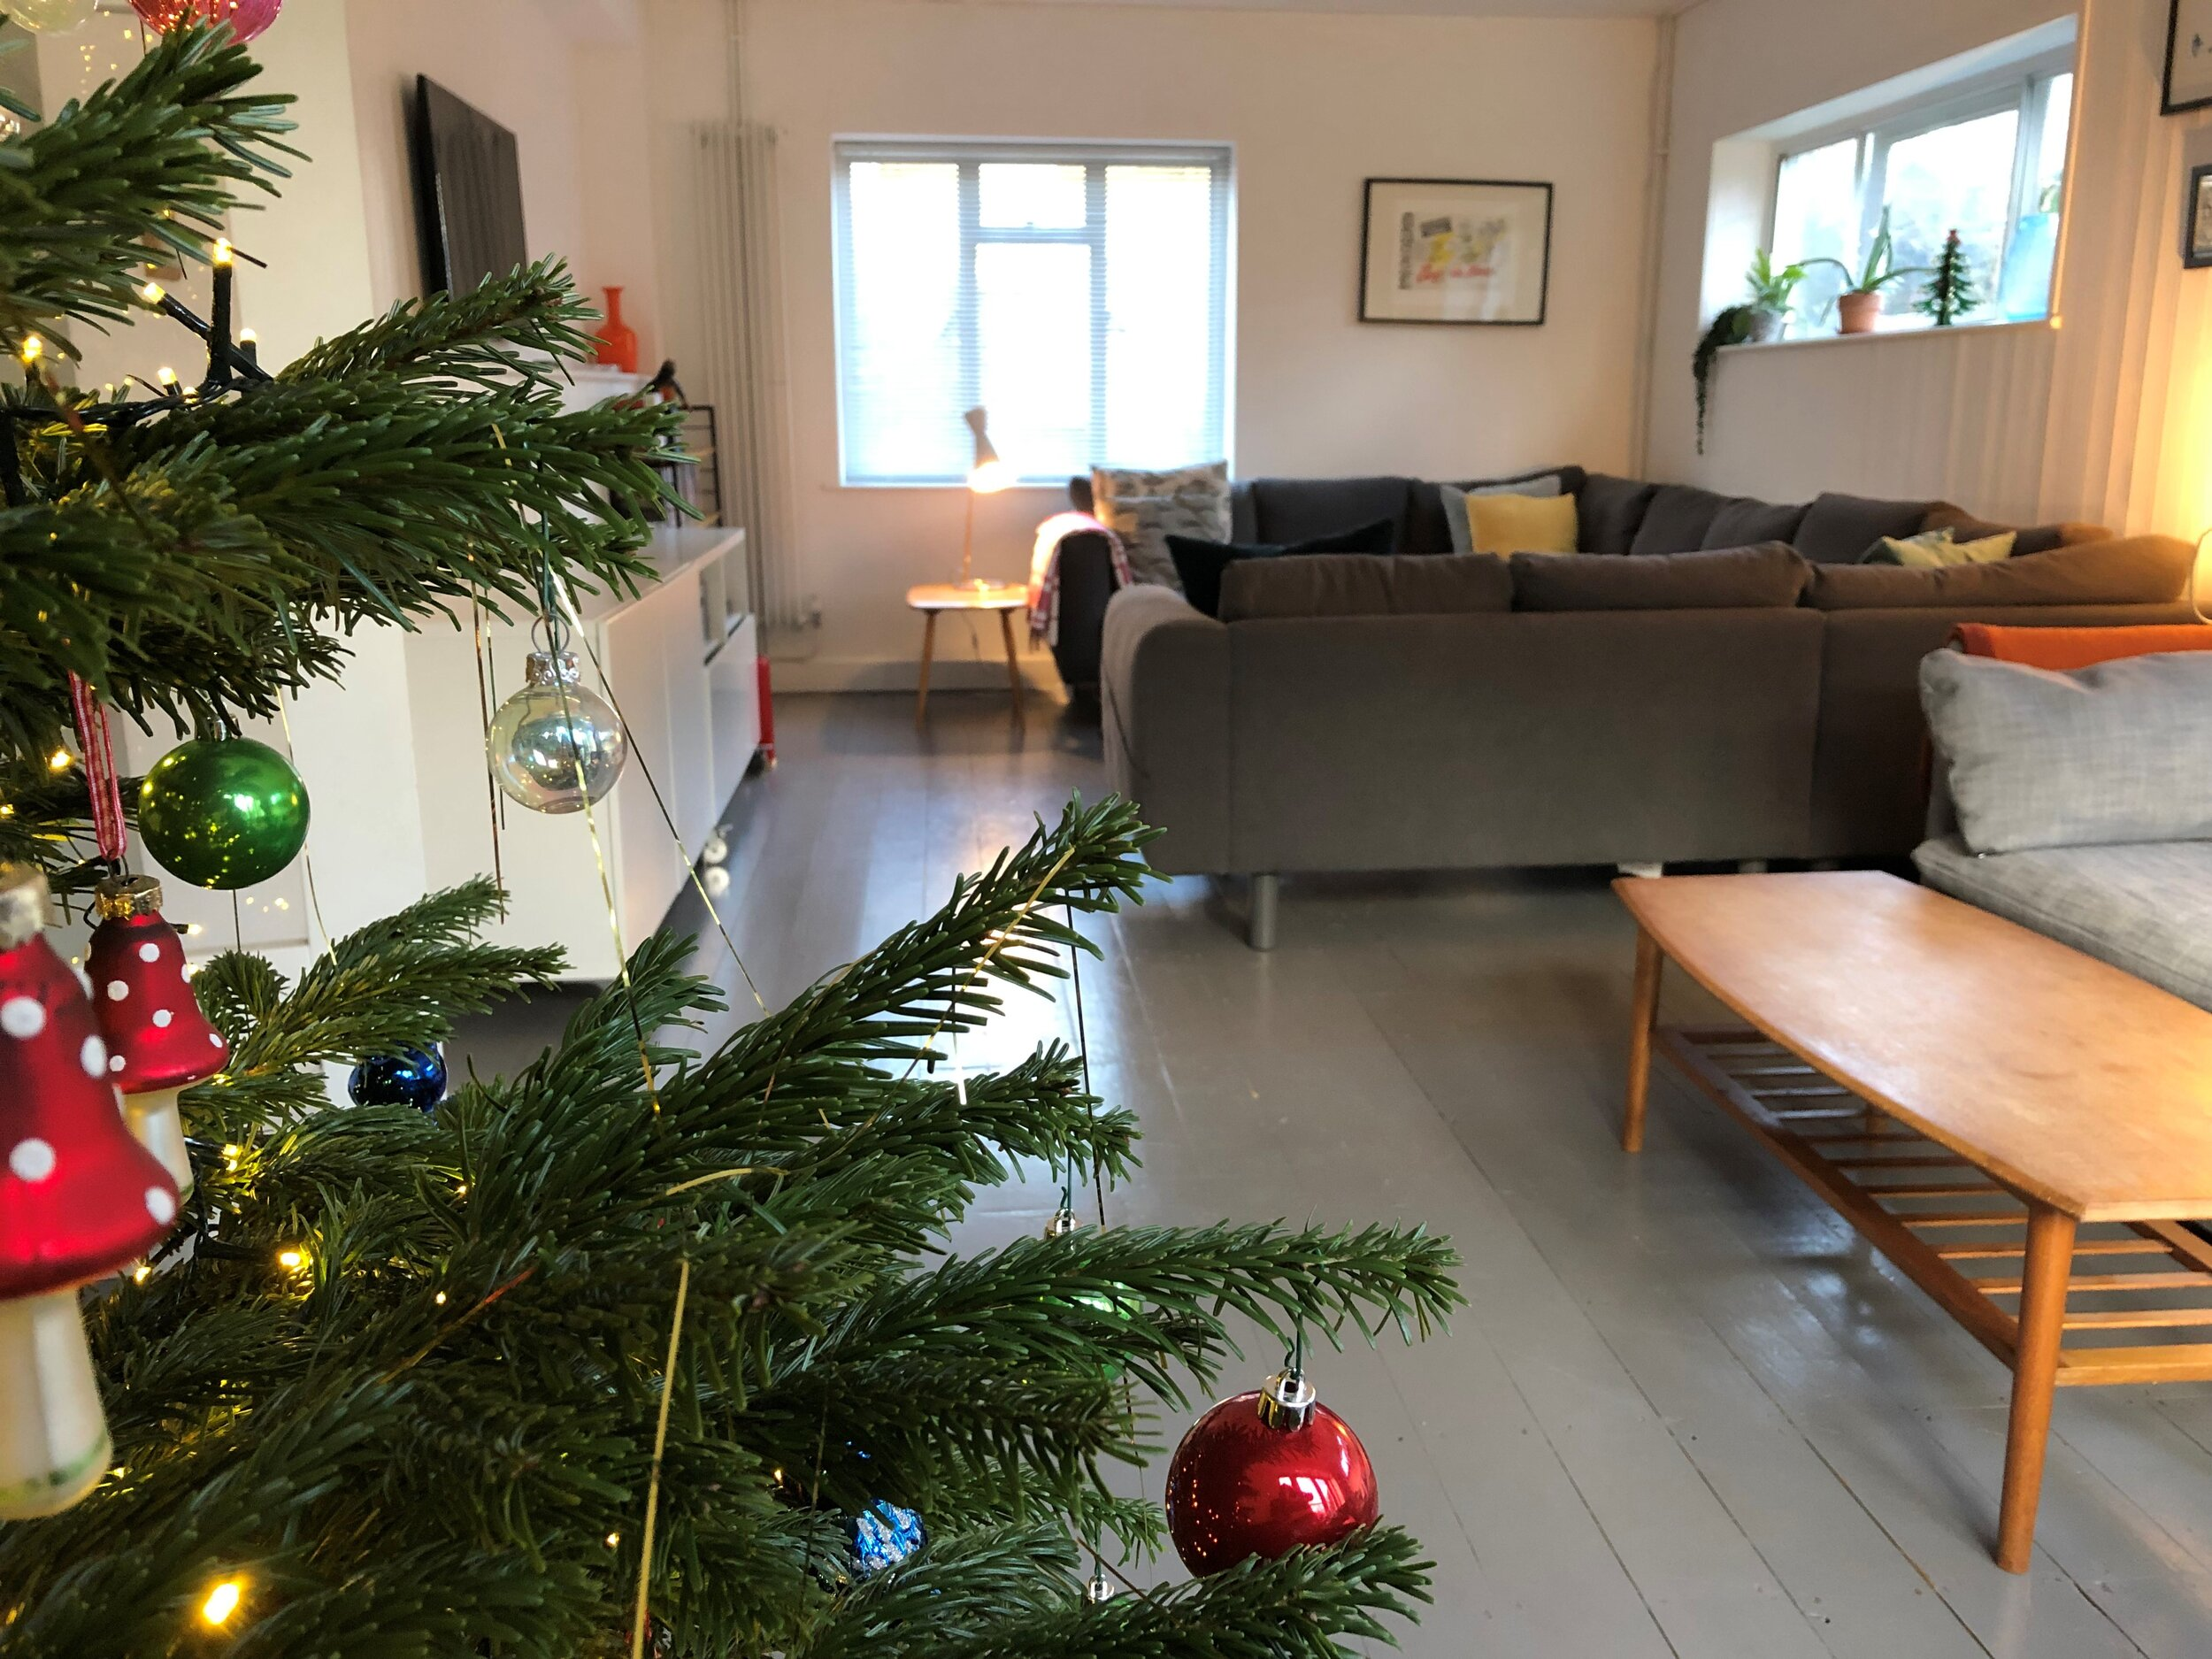 The Firs - sleeps 12 and a dog - 5 bedrooms, 2 bathrooms, additional wc, large kitchen and dining area and spacious lounge, centrally located and private parking for up to 4 cars.